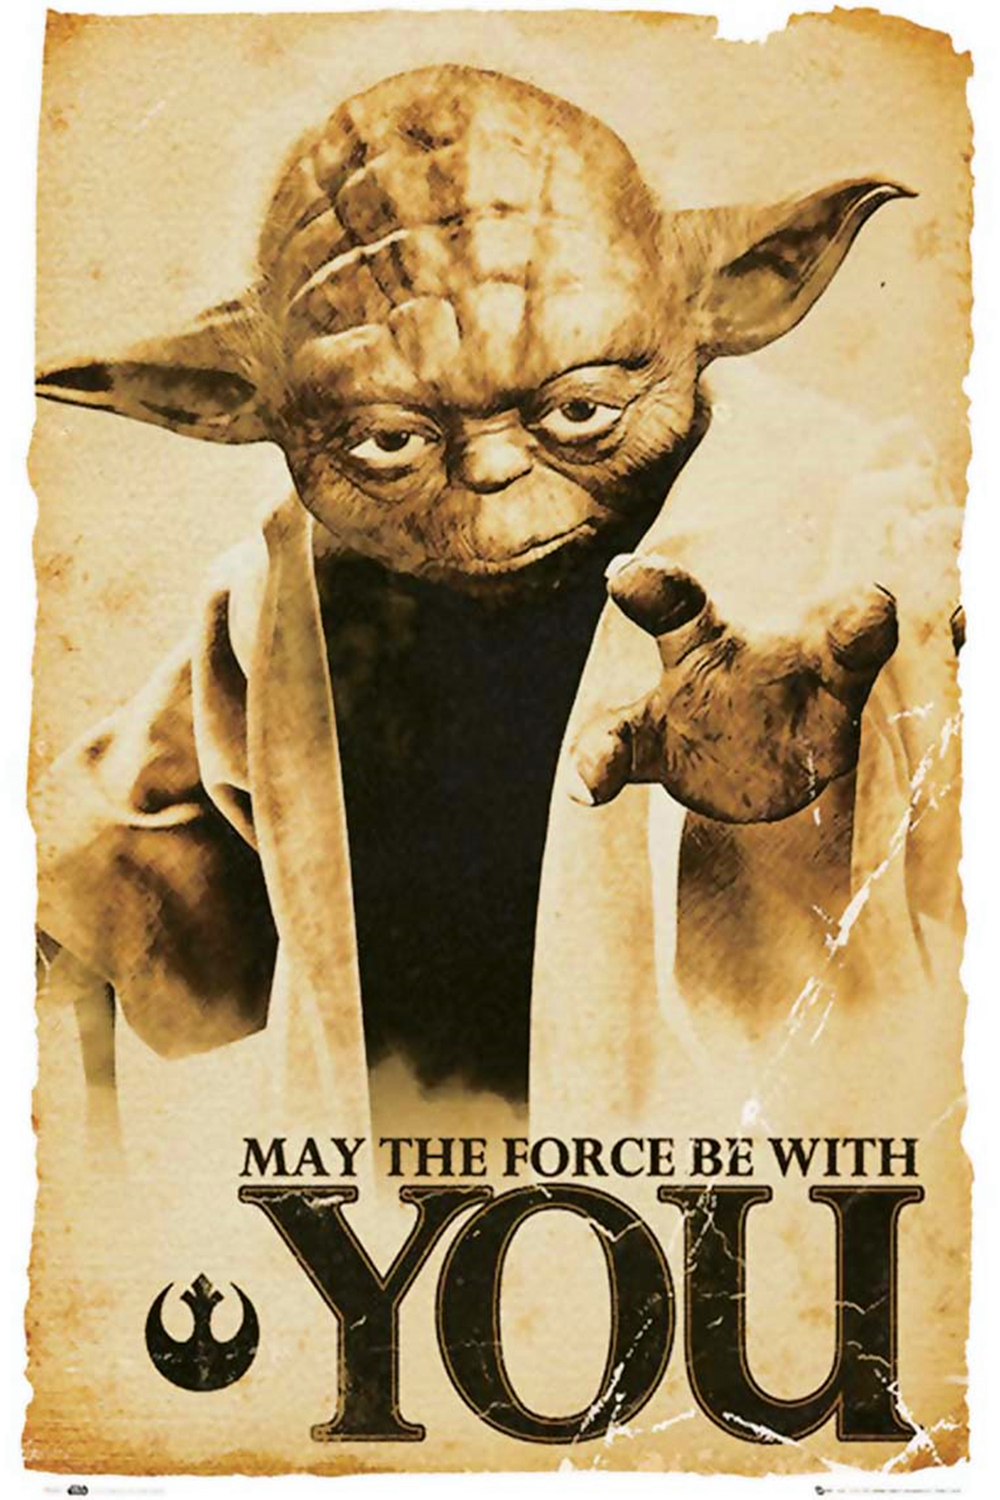 Poster Spruch Us 10 95 15 Off Star Wars Posters Jedi Yoda Poster May The Force Be With You Custom Marvel Comic Canvas Wallpaper Star Wars Sticker Pn 1173 In